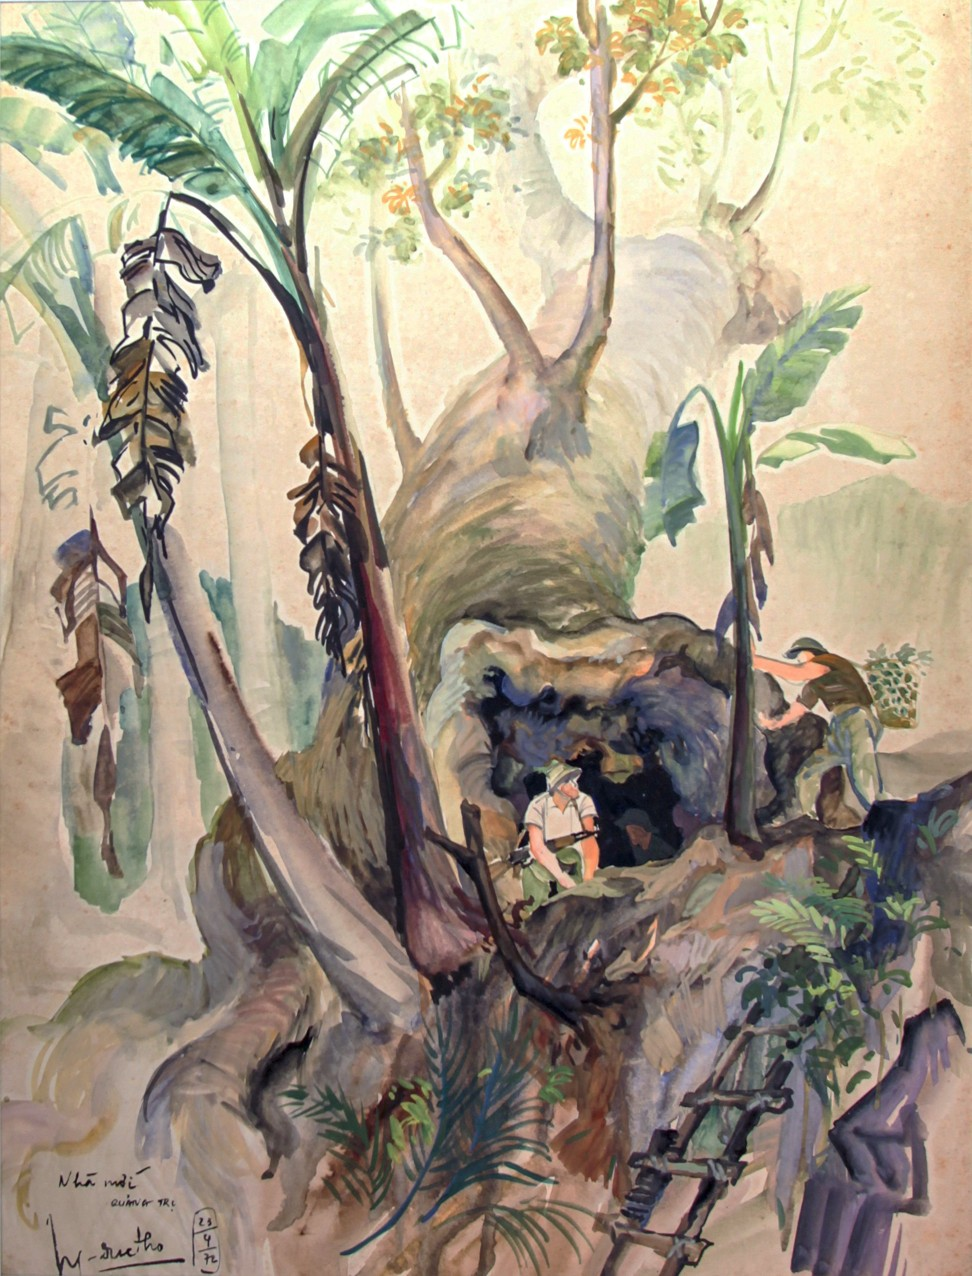 Viet Cong soldiers cook in the shelter of the fallen tree in Tho's 1972 painting. Image: Witness Collection / Nguyen Duc Tho